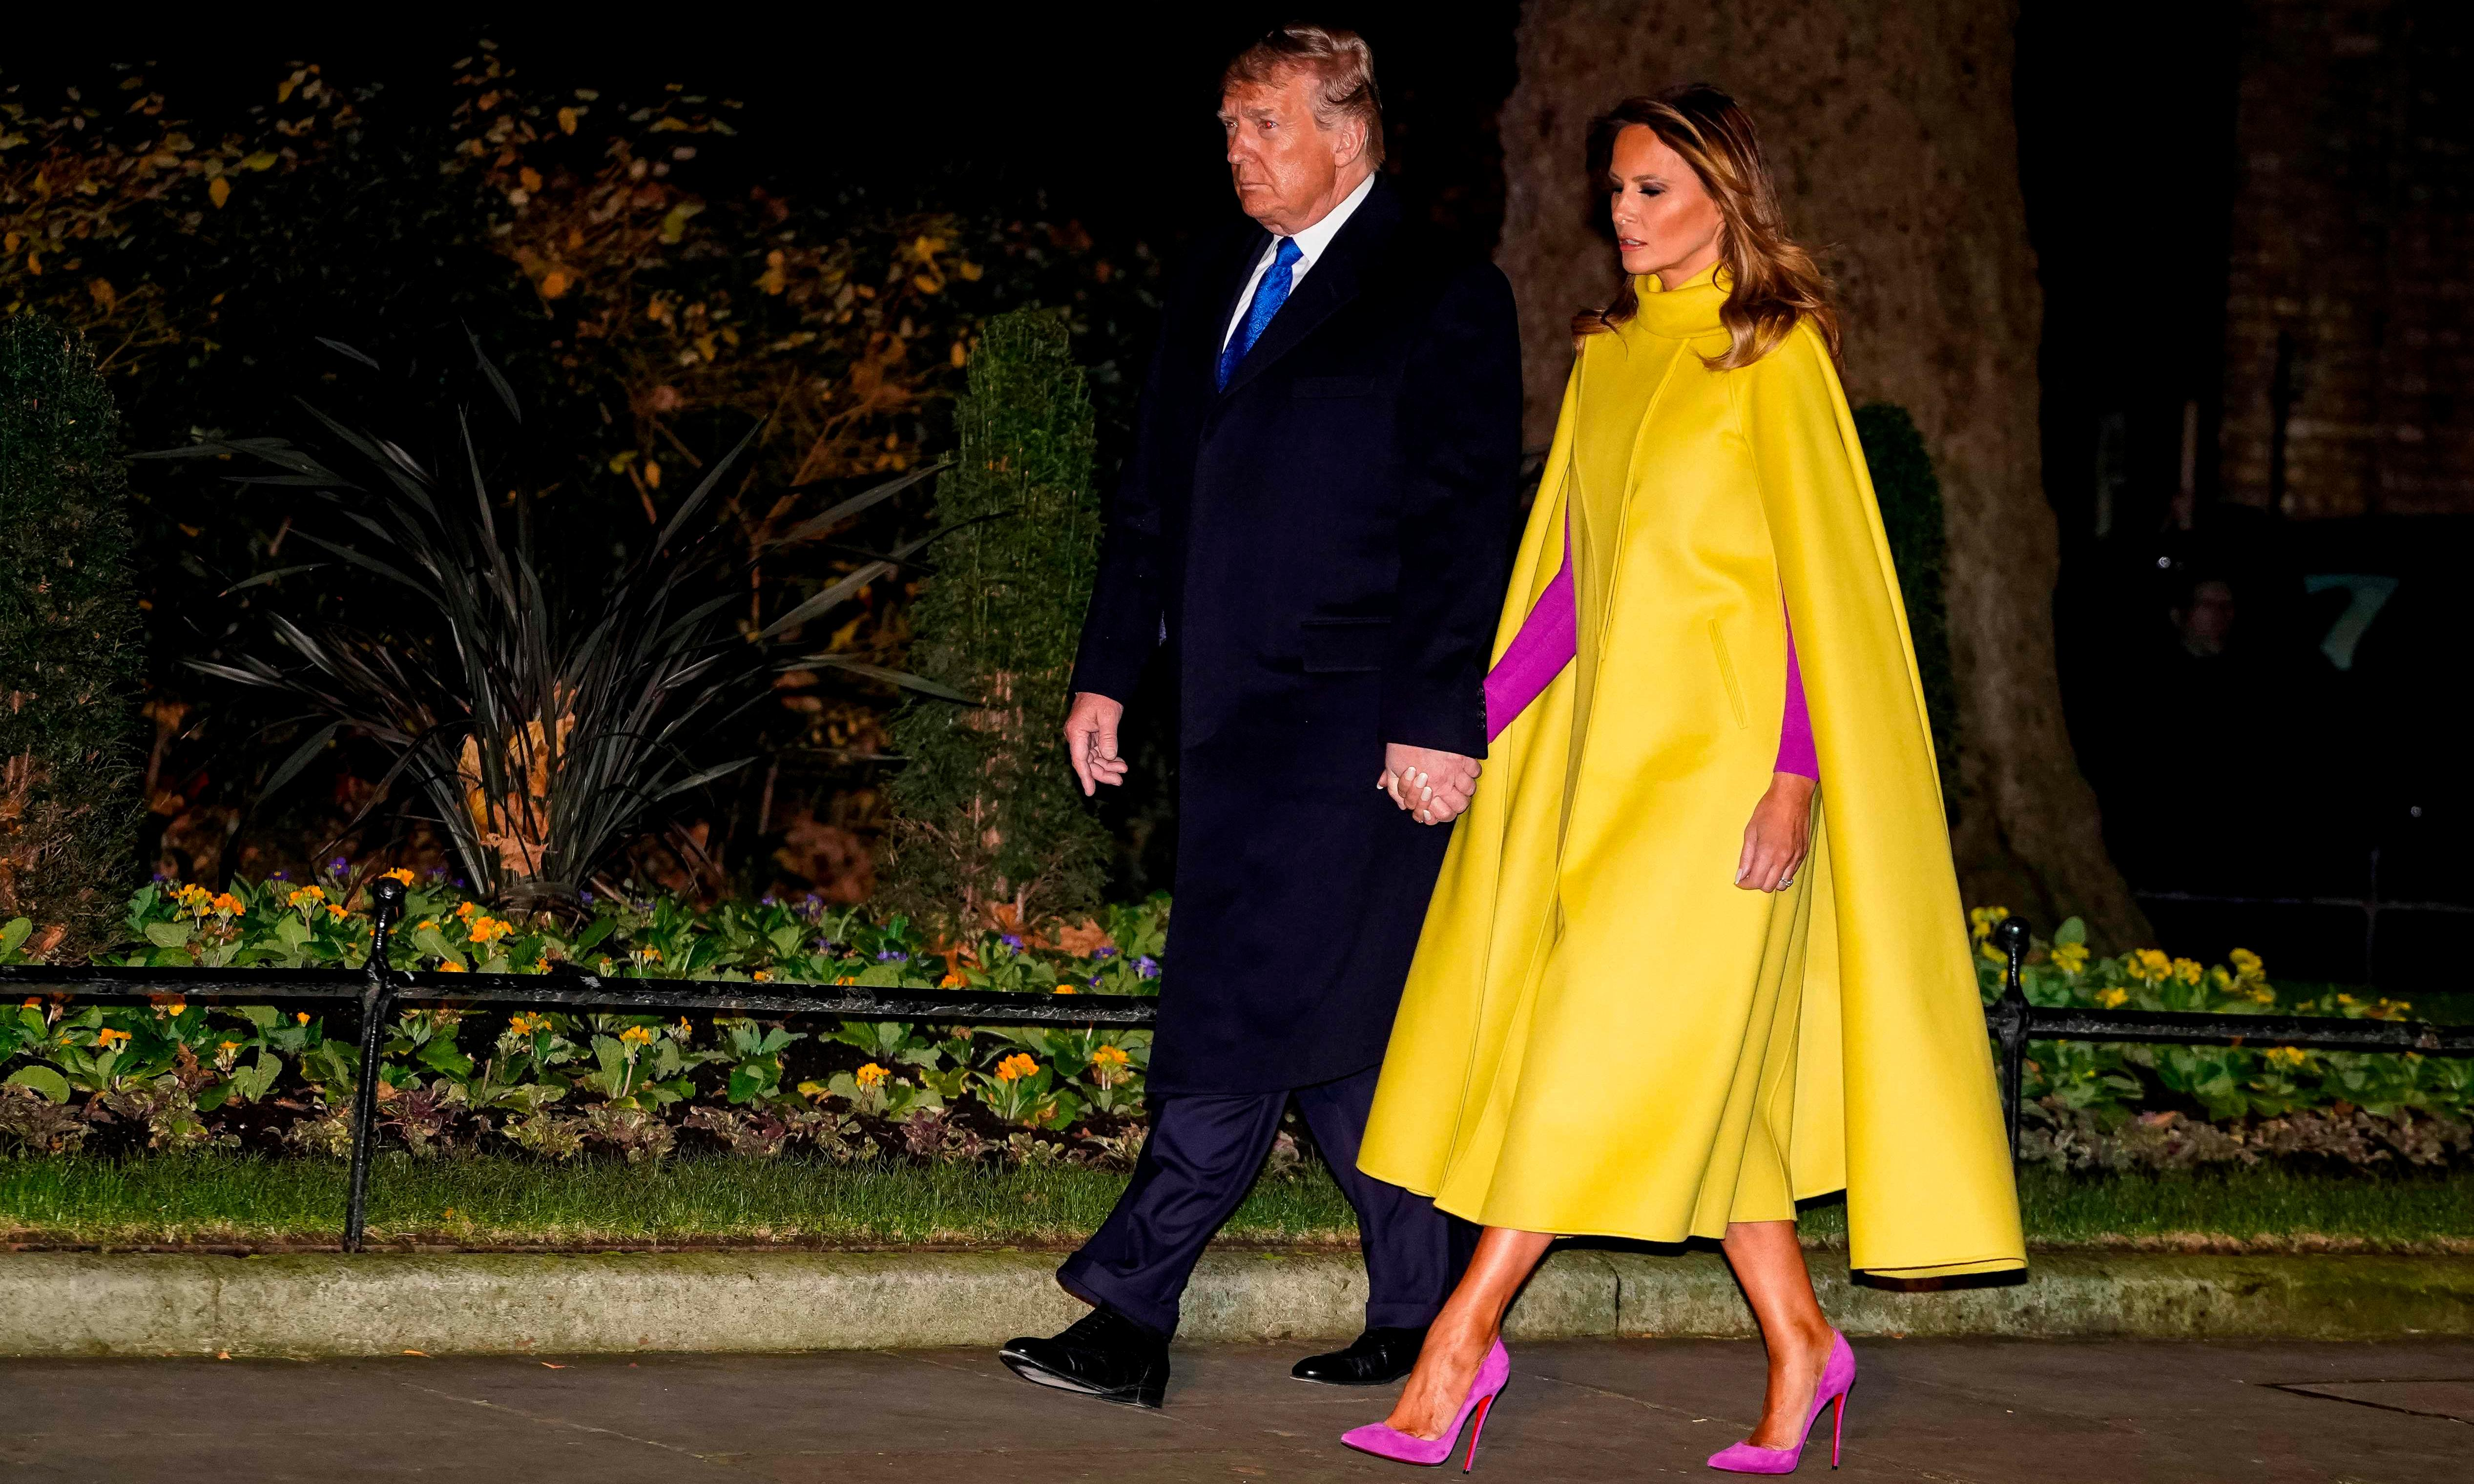 Style superstar or pop culture villain? The meaning of Melania Trump's cape